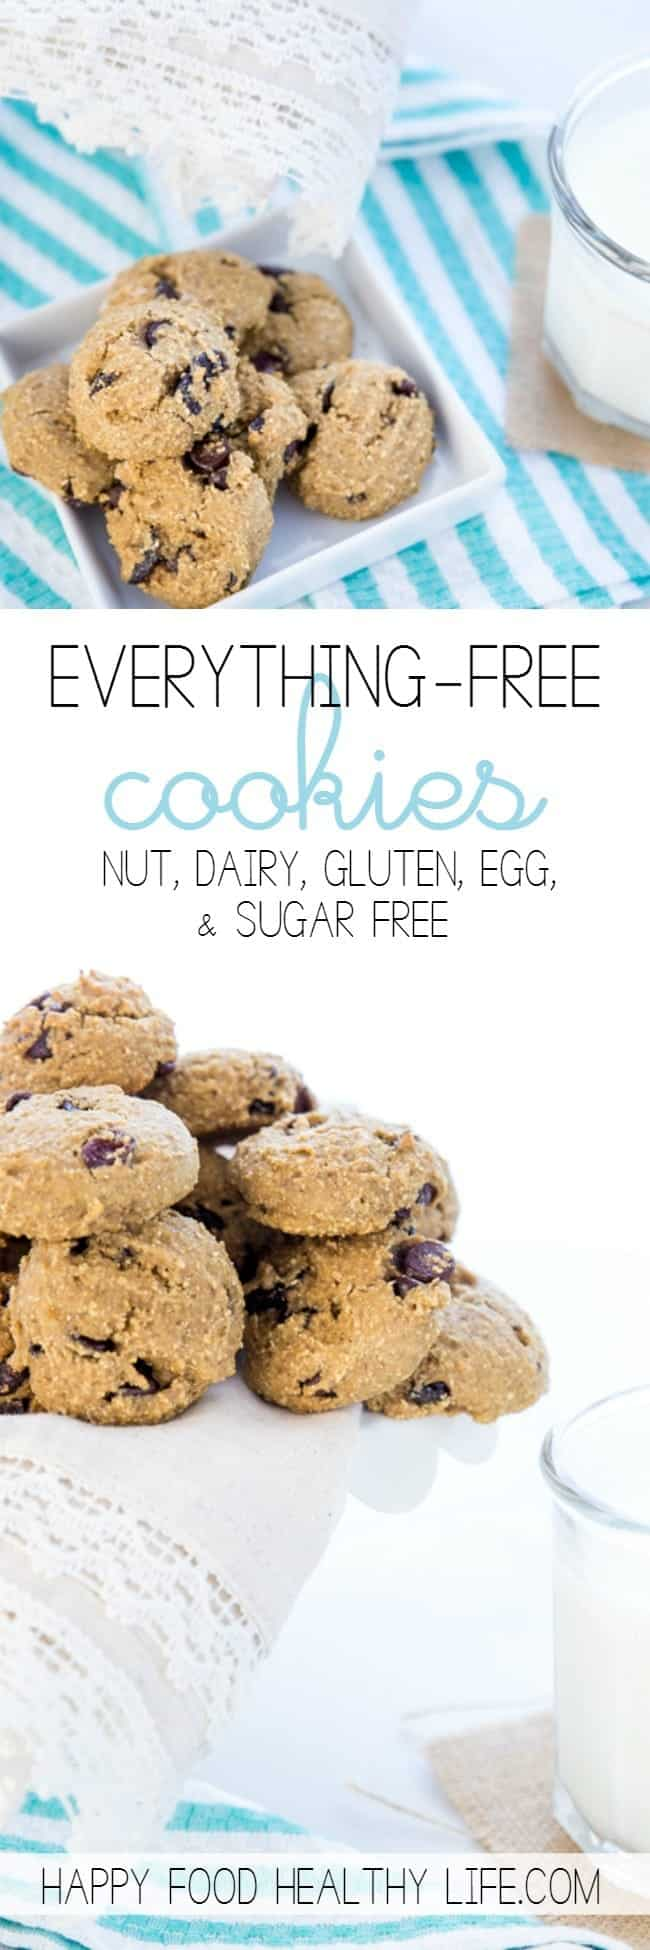 Everything-Free Cookies (dairy-free, gluten-free, egg-free, nut-free ...